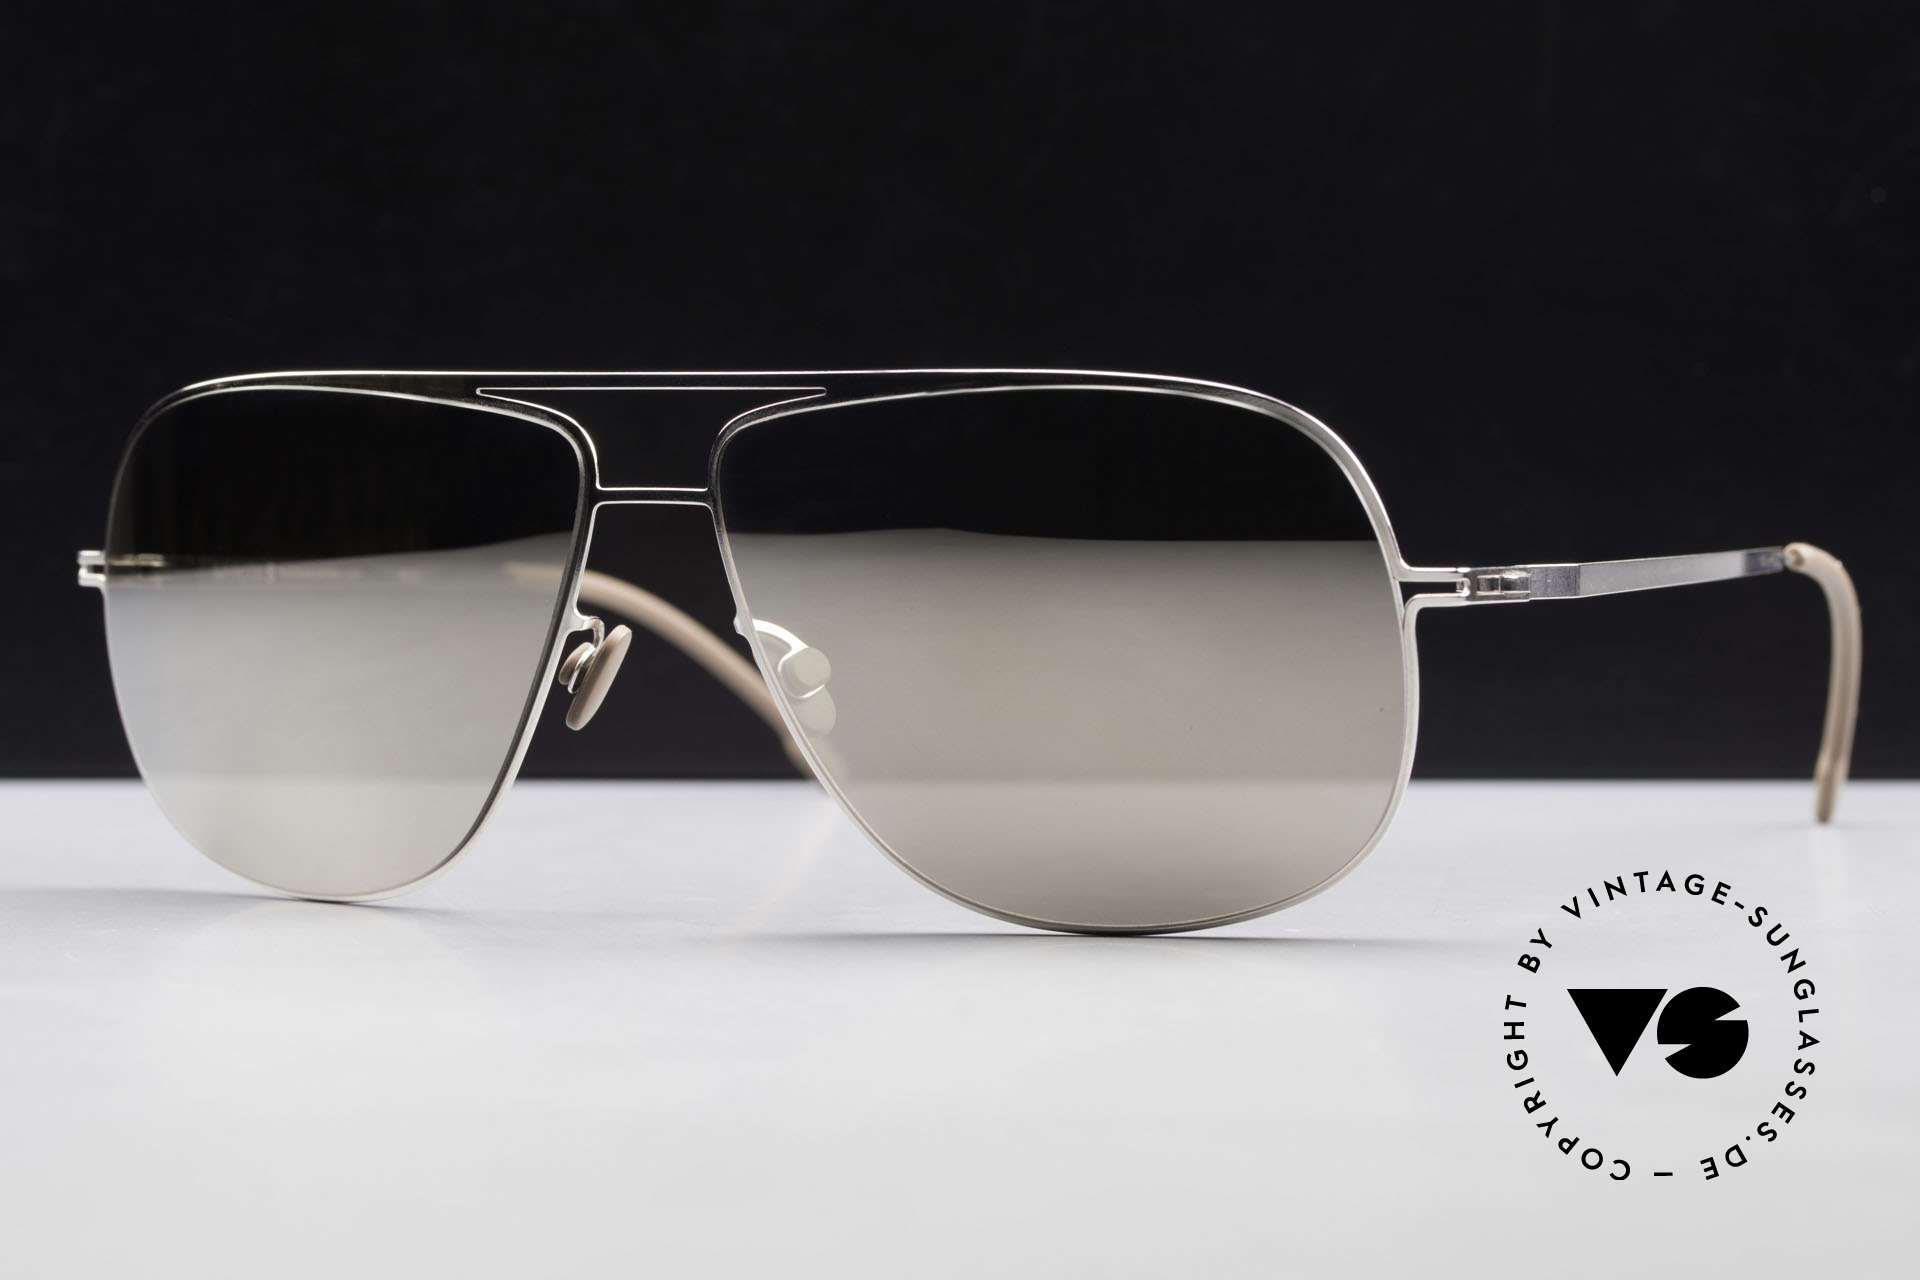 Mykita Jon Limited Platinum Edition 2011, top-notch quality with SILVER-MIRRORED sun lenses, Made for Men and Women